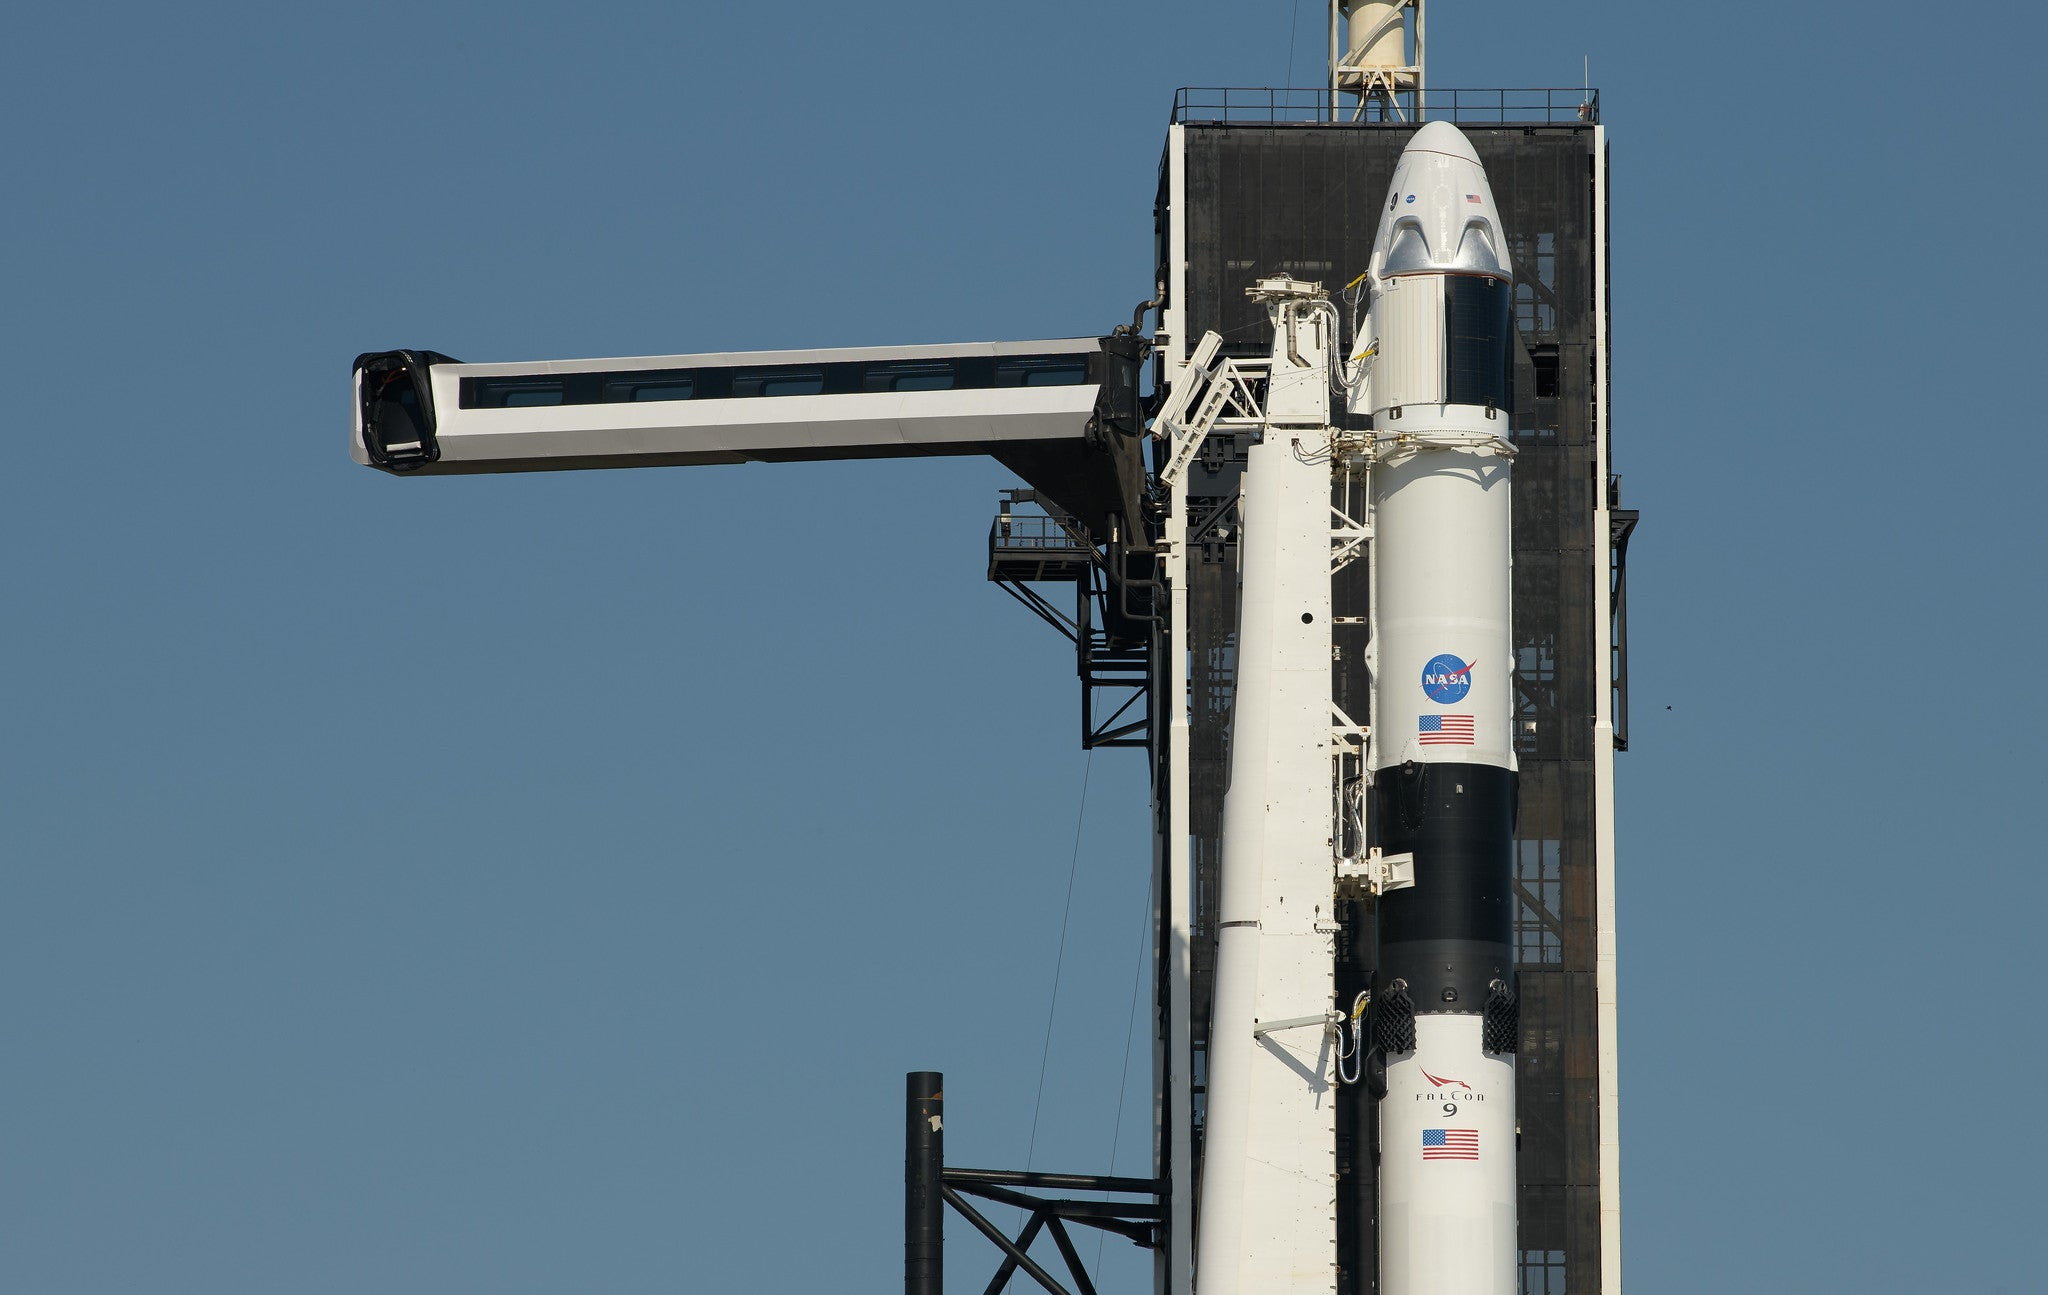 SpaceX's Crew Dragon capsule sits atop its Falcon rocket, ready to launch.